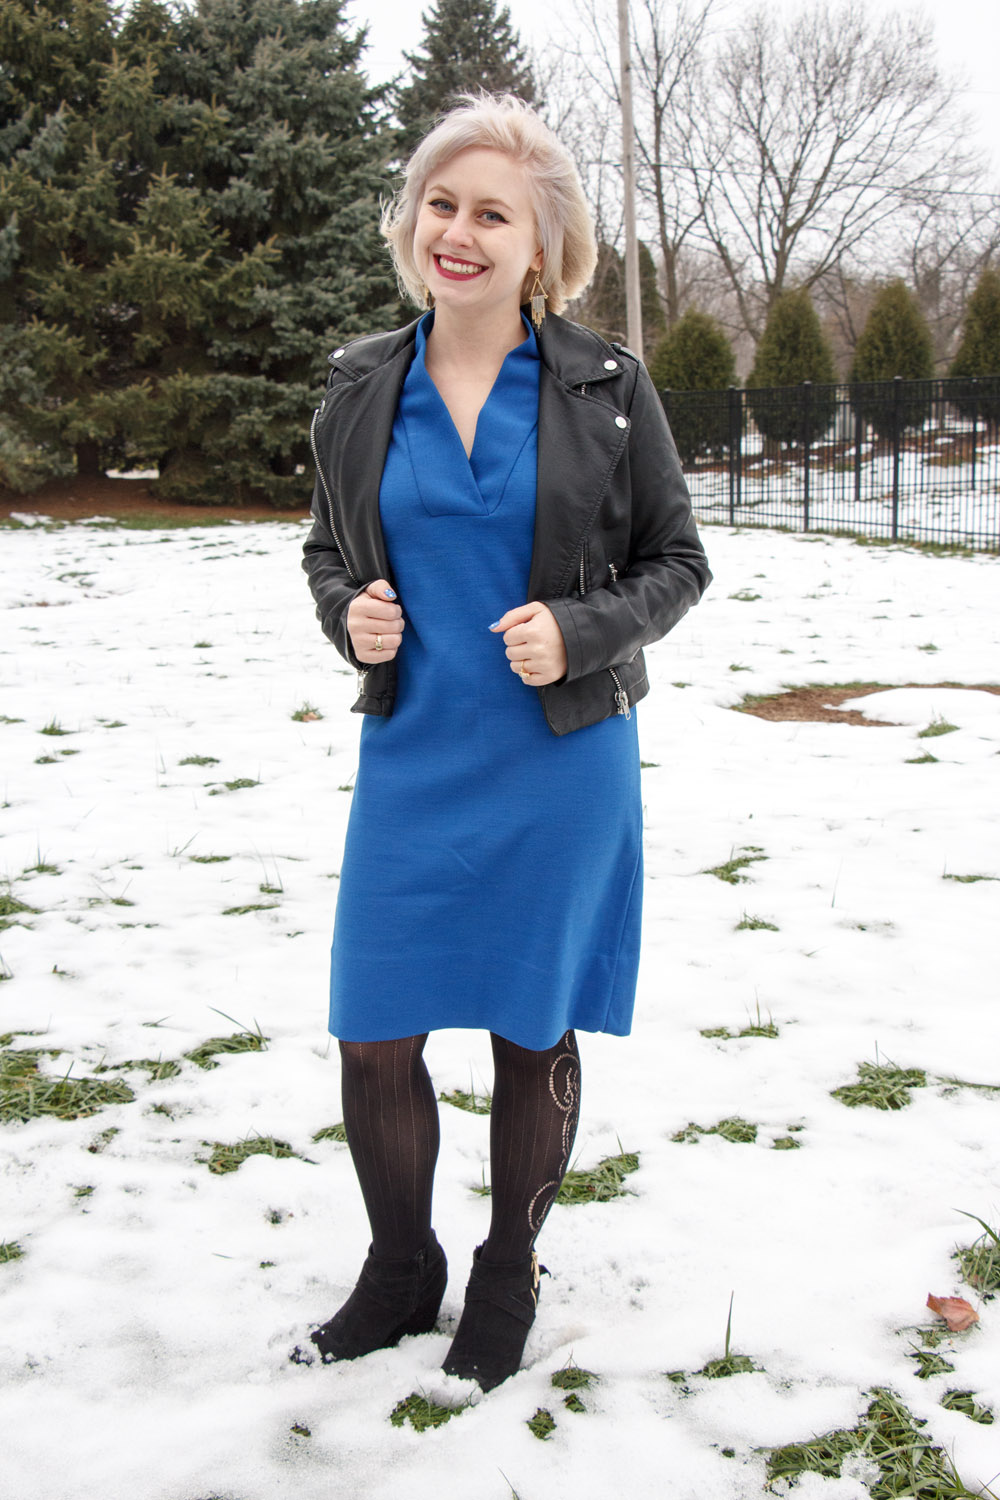 Cobalt Blue Vintage 60s Shift Dress, Faux Leather Jacket, Patterned Tights